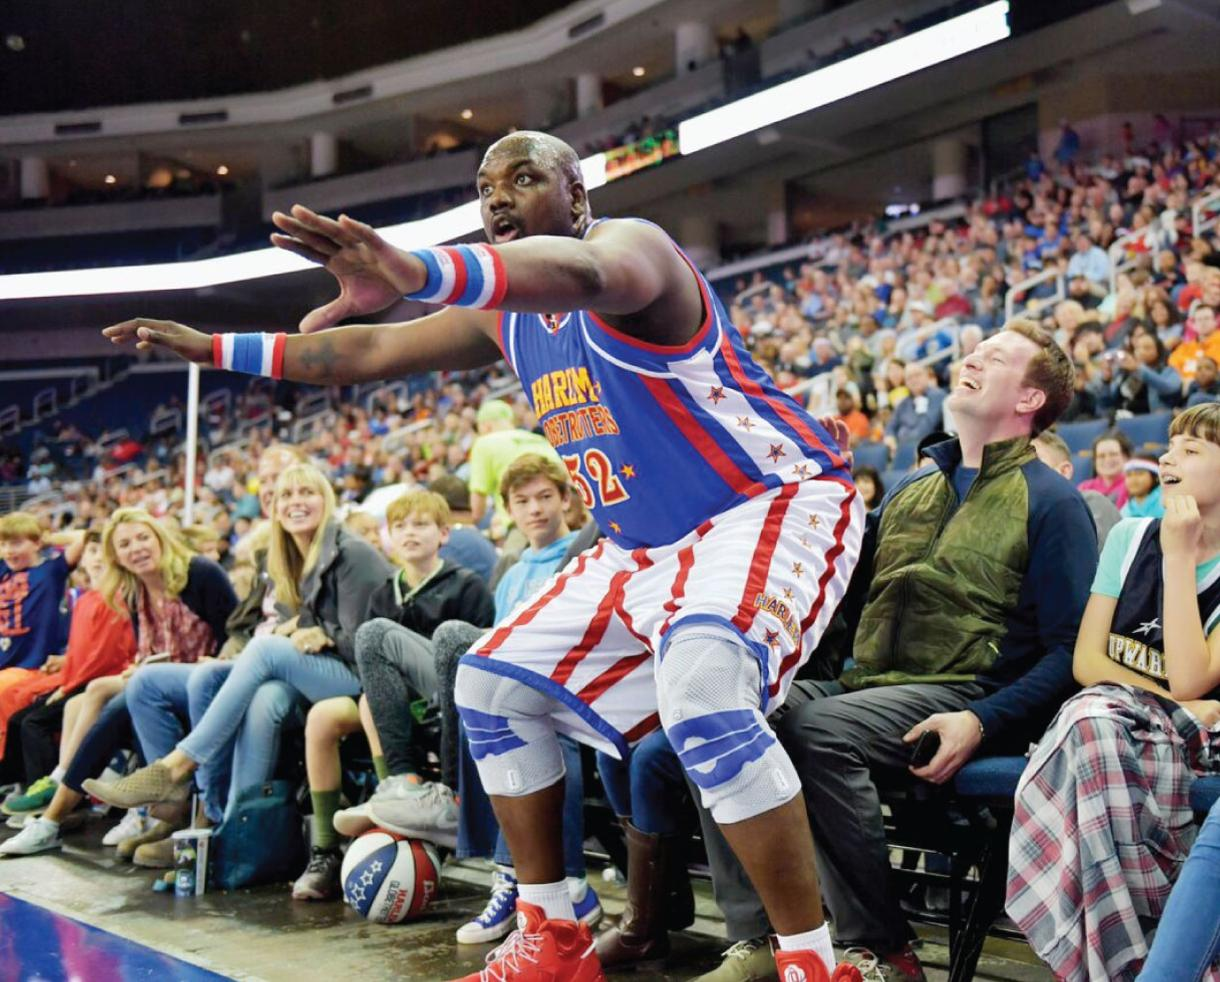 Up to 40% Off Harlem Globetrotters Tickets at Royal Farms Arena in Baltimore